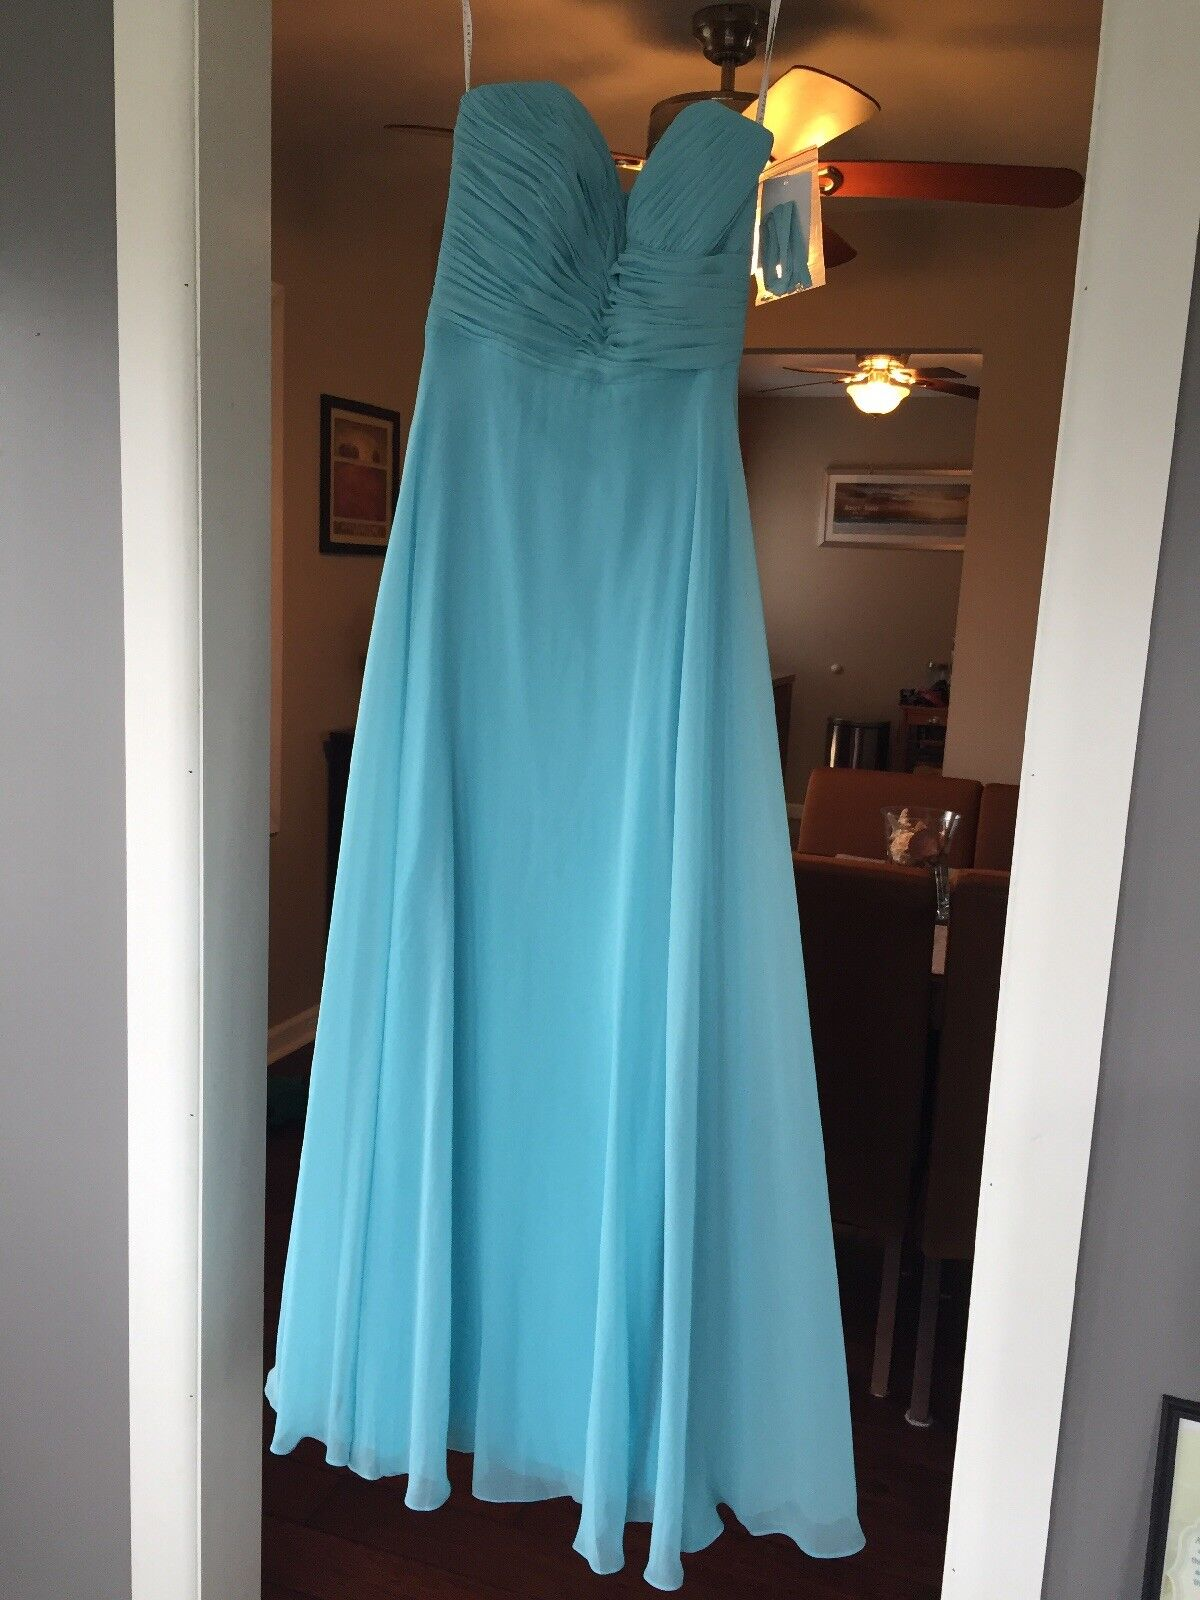 Vivian Diamond Bridesmaid Dress Size 0